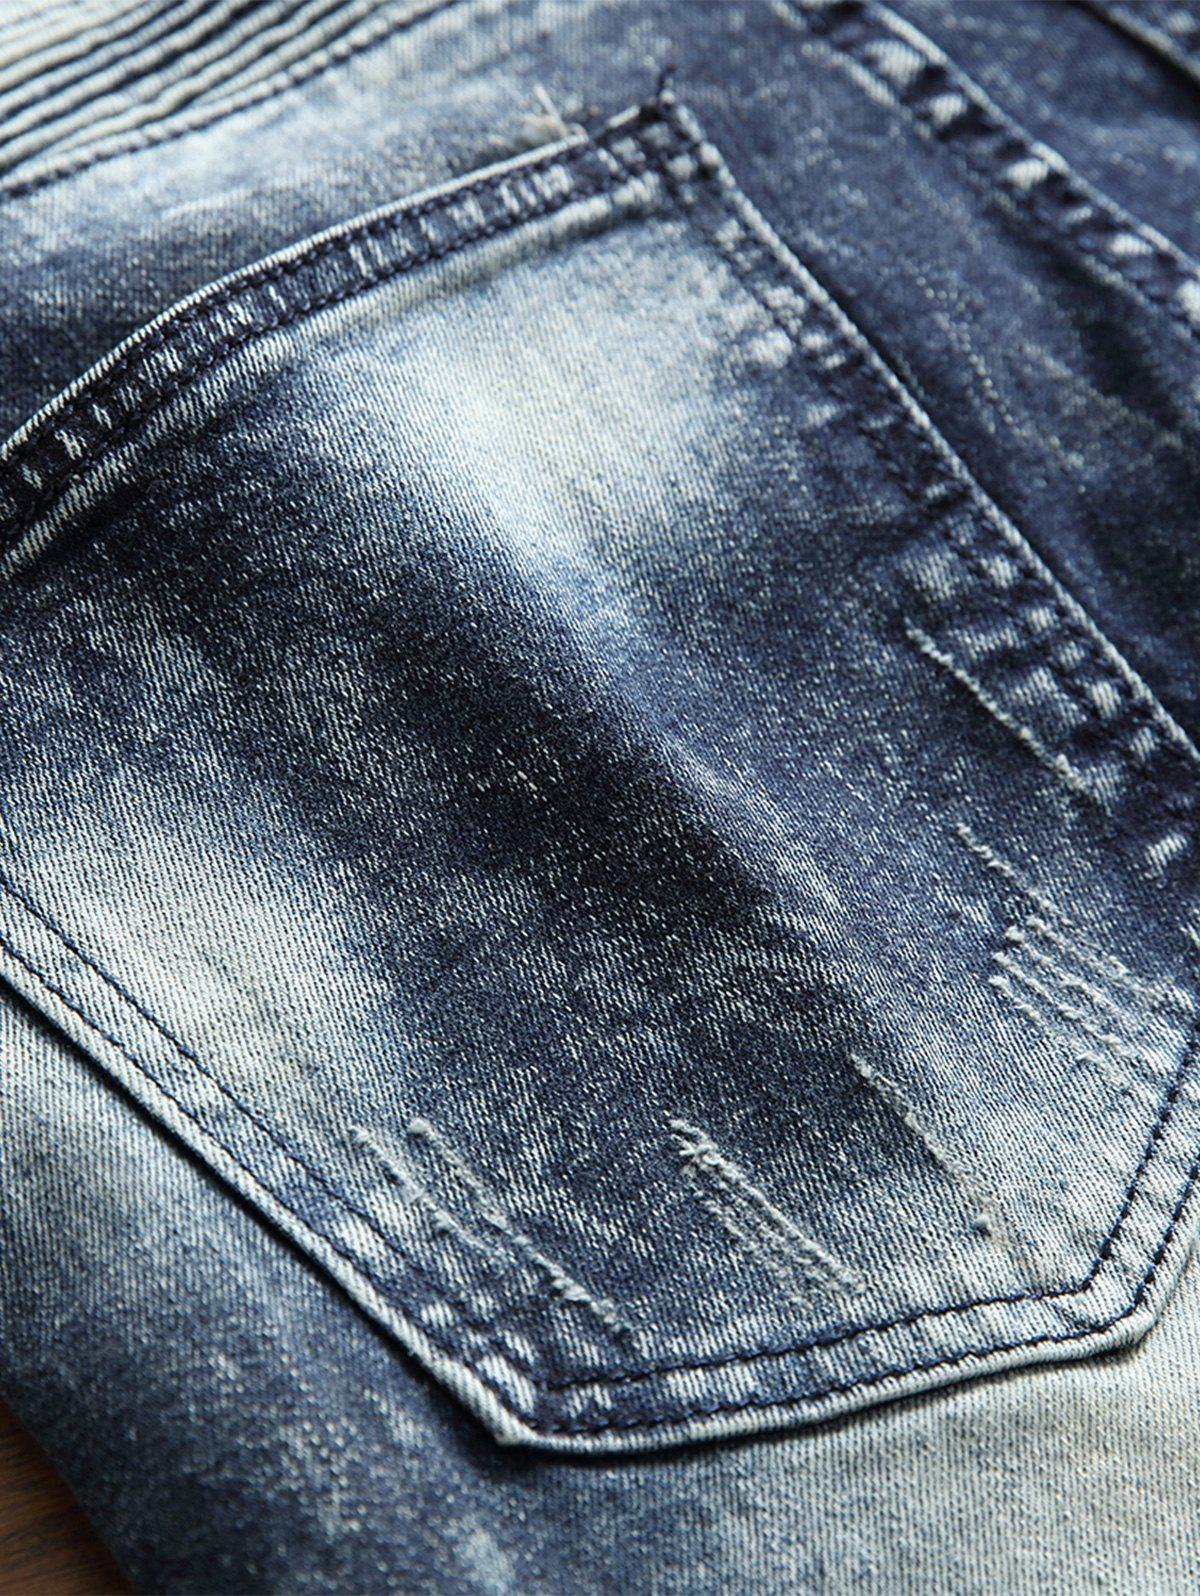 Zippers Patch Accordion Pleat Ripped Jeans - DENIM BLUE 36